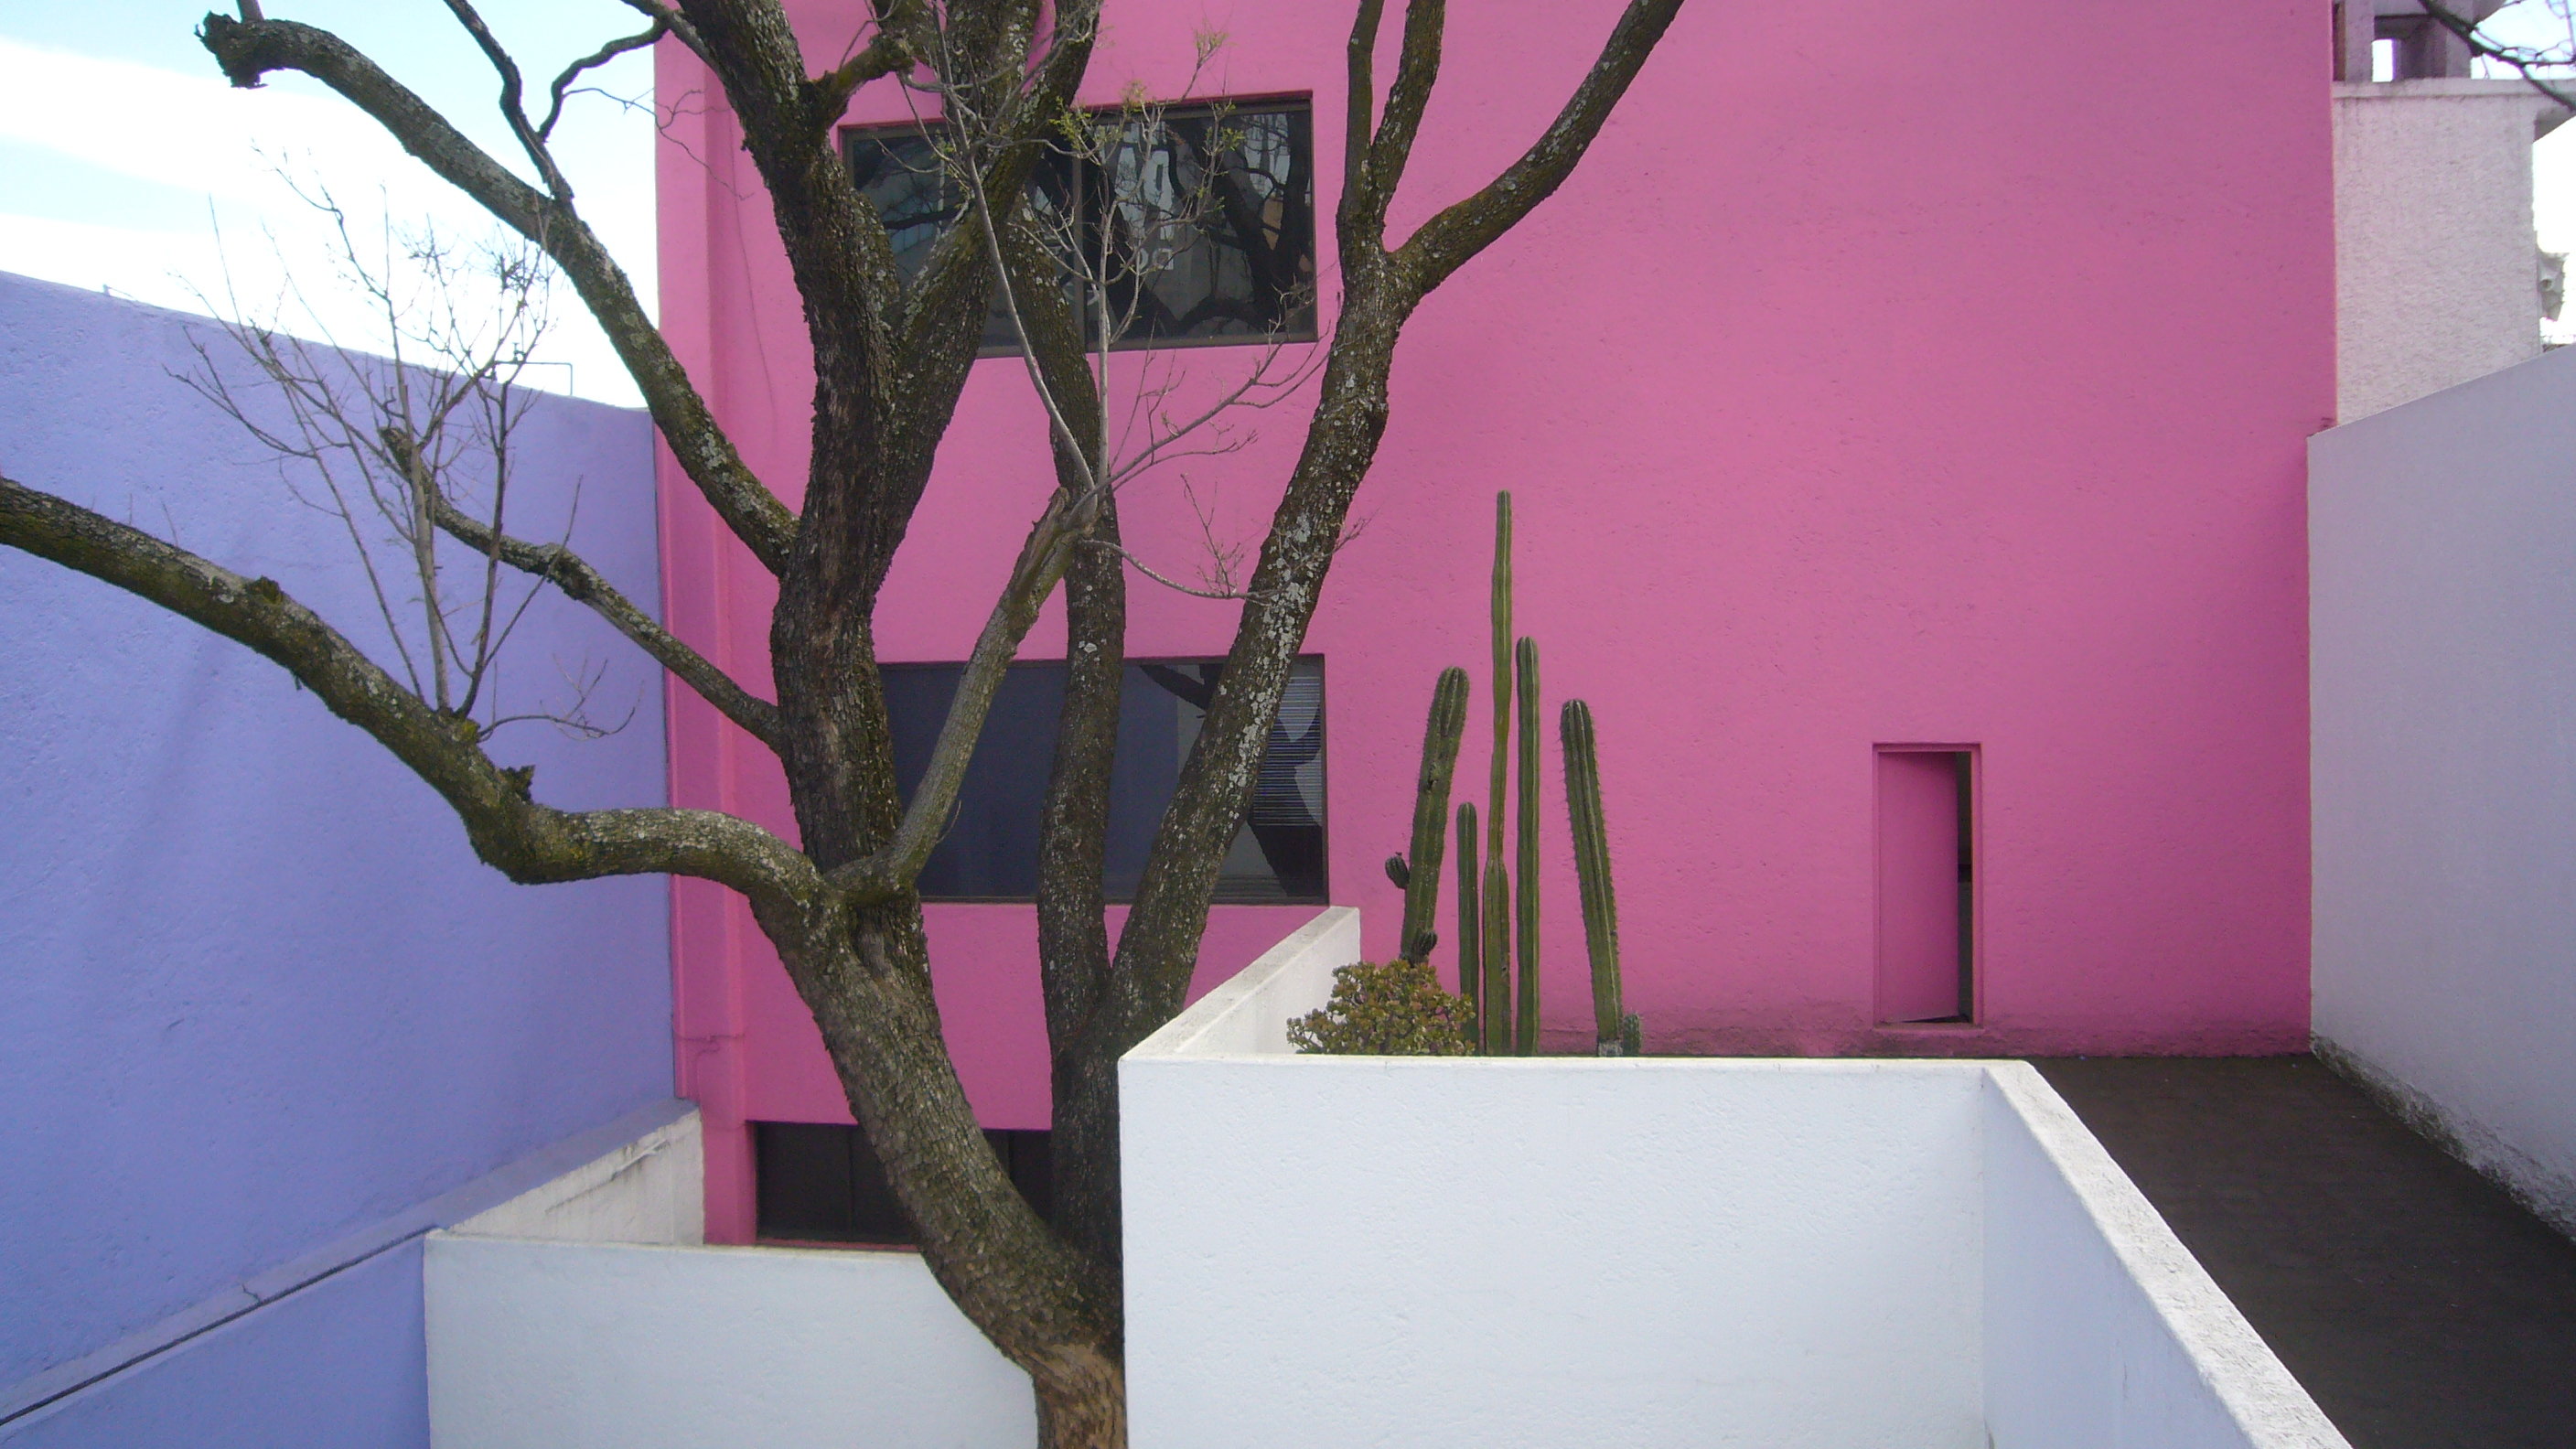 Luis Barragán architecture | © Kent Wang/Flickr